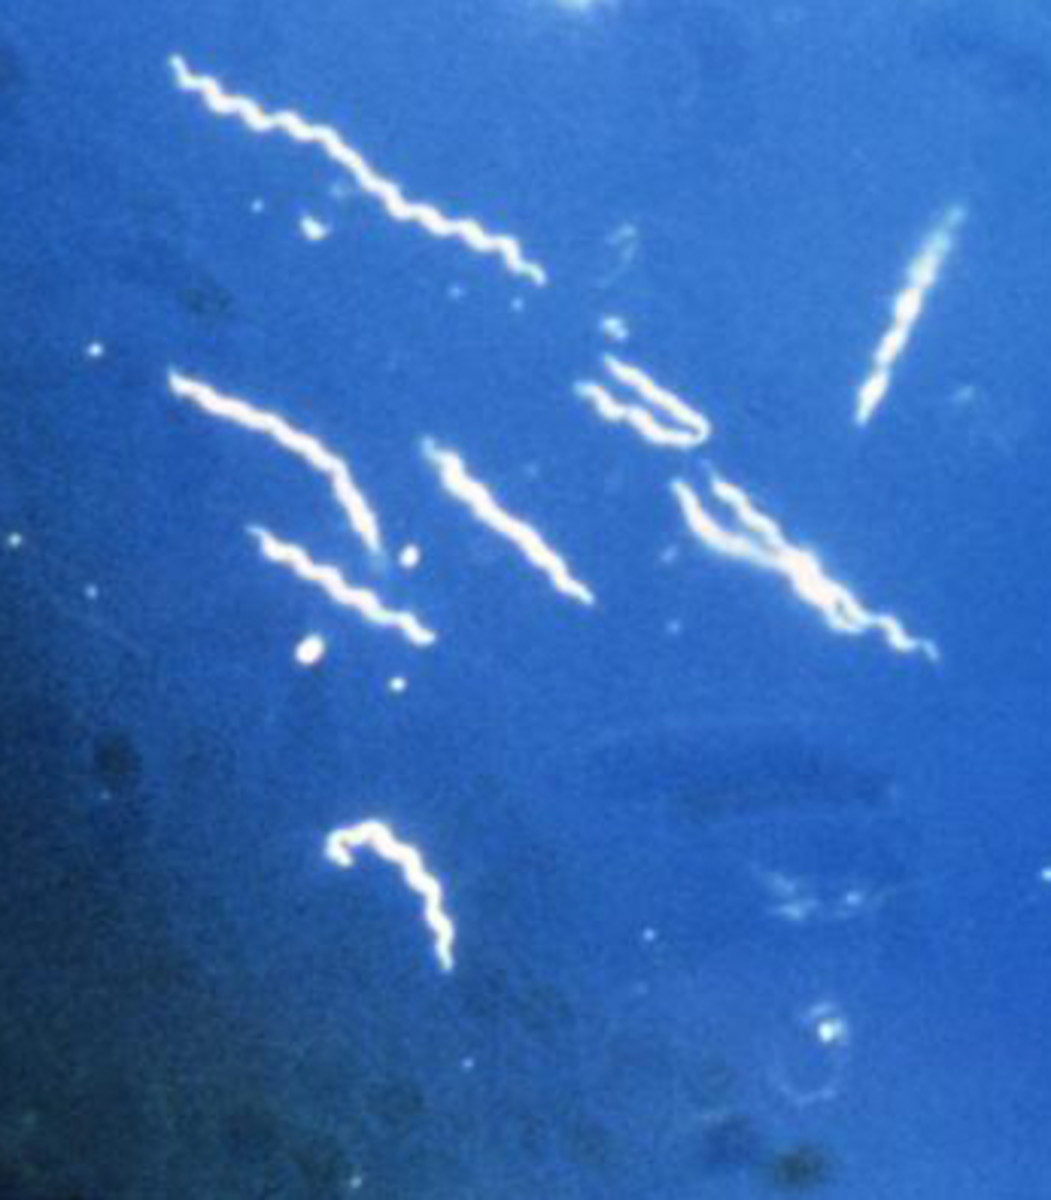 Using darkfield microscopy technique, this photomicrograph, magnified 400x, reveals the presence of several corkscrew-shaped bacteria known as Borrelia burgdorferi